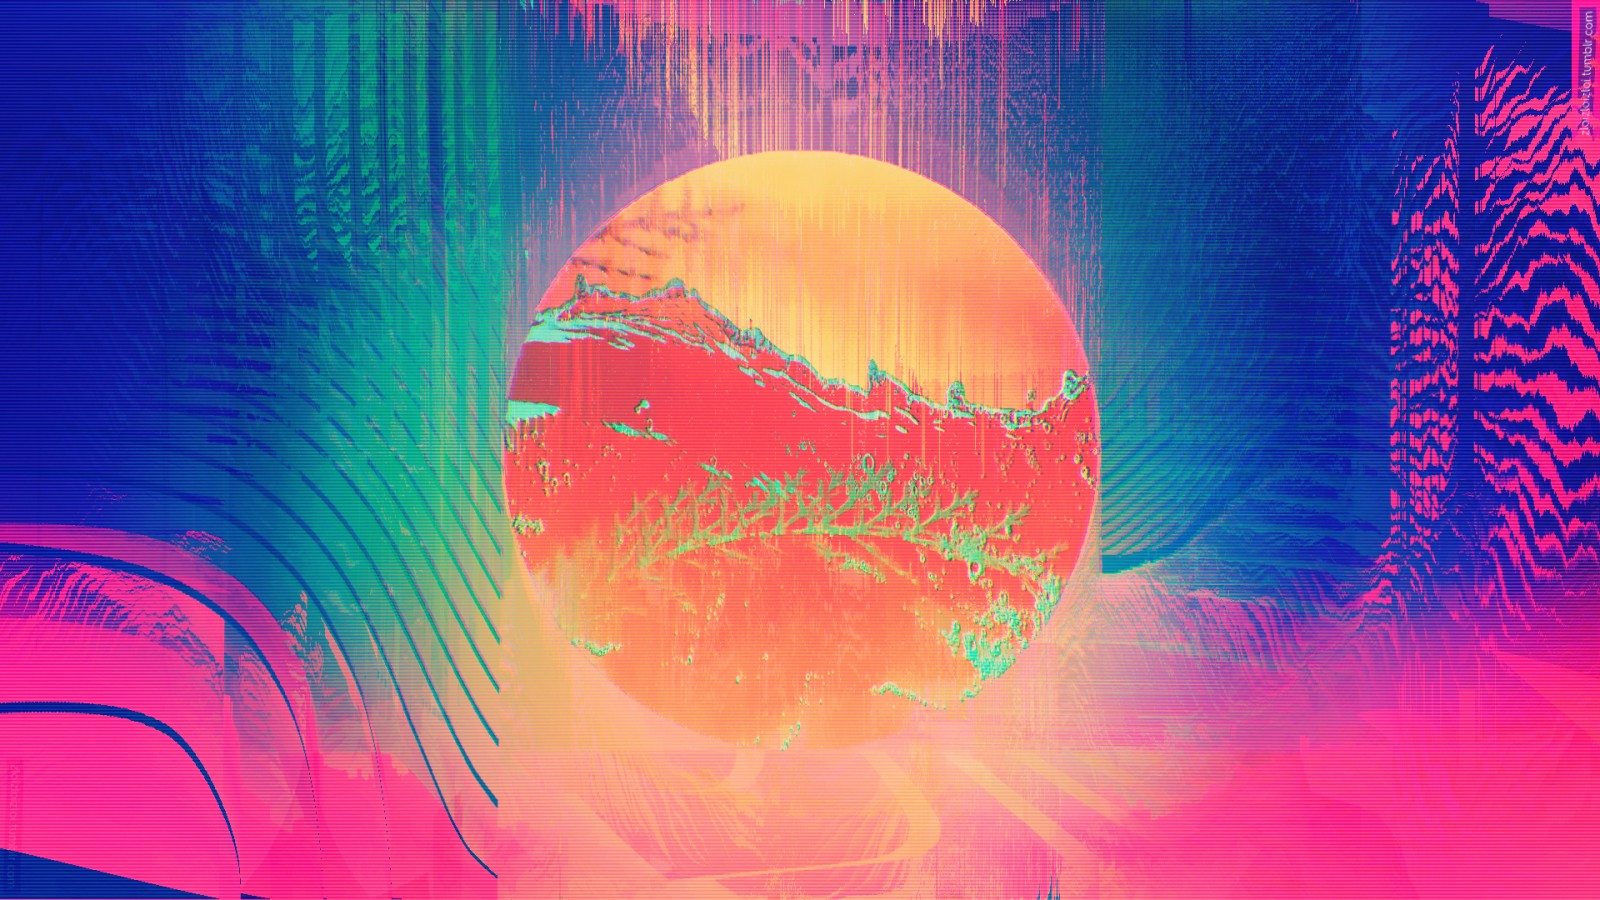 Lsd Wallpaper Iphone Glitch Art Wallpapers Hd Wallpapers Id 23749